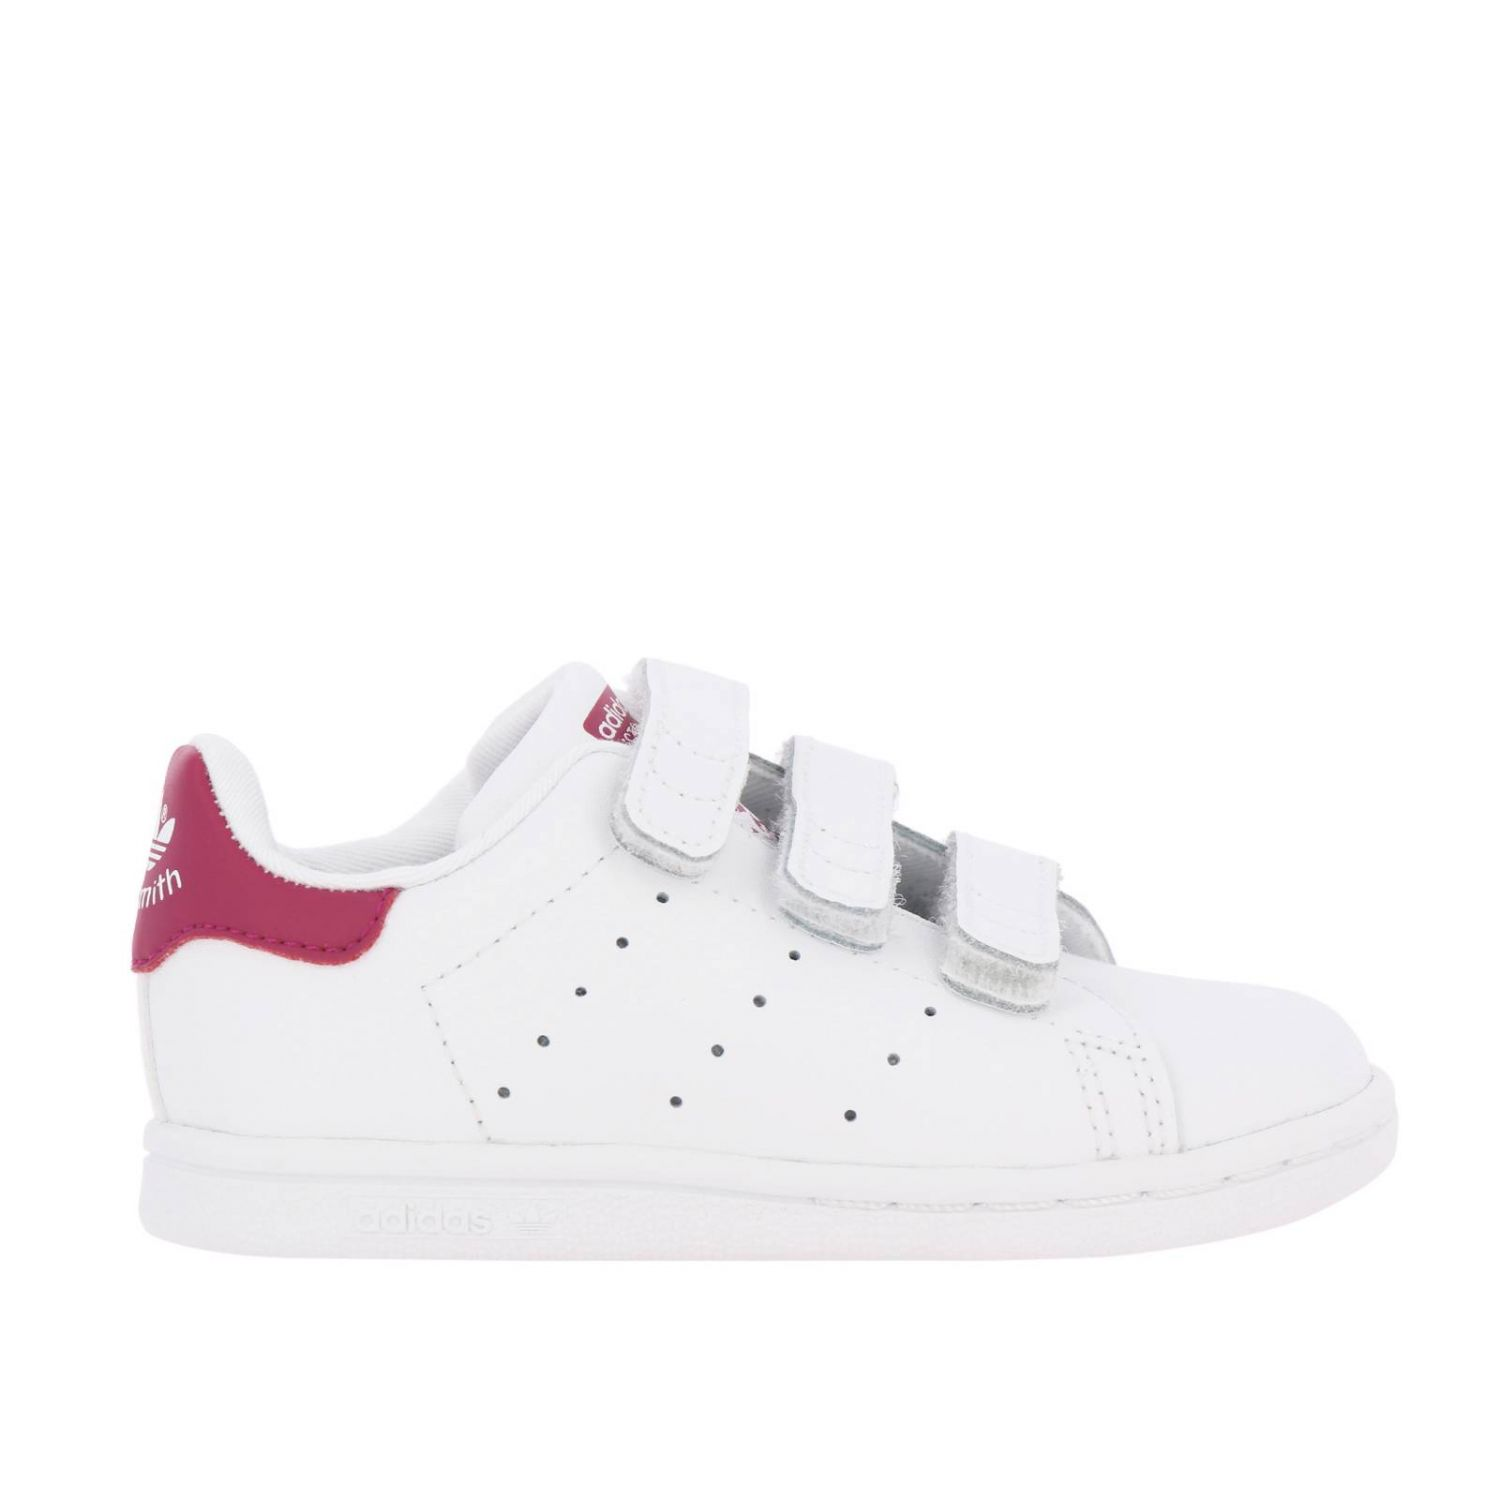 Zapatos Adidas Originals: Zapatillas Stan Smith Adidas Originals de cuero liso con tacón de color blanco 1